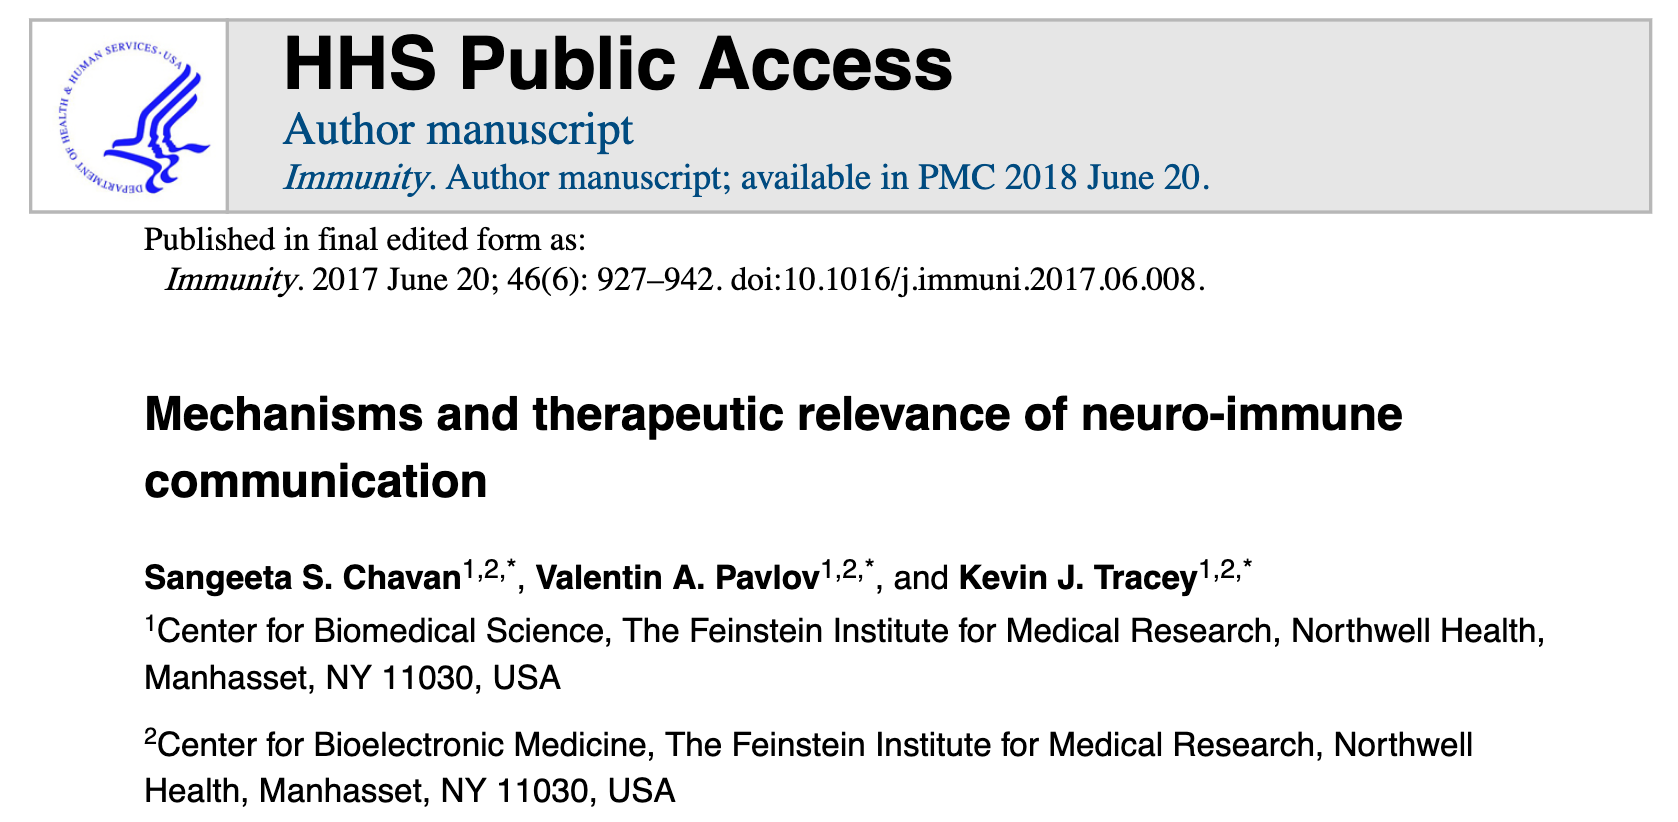 MECHANISMS AND THERAPEUTIC RELEVANCE OF NEURO IMMUNE COMMUNICATION